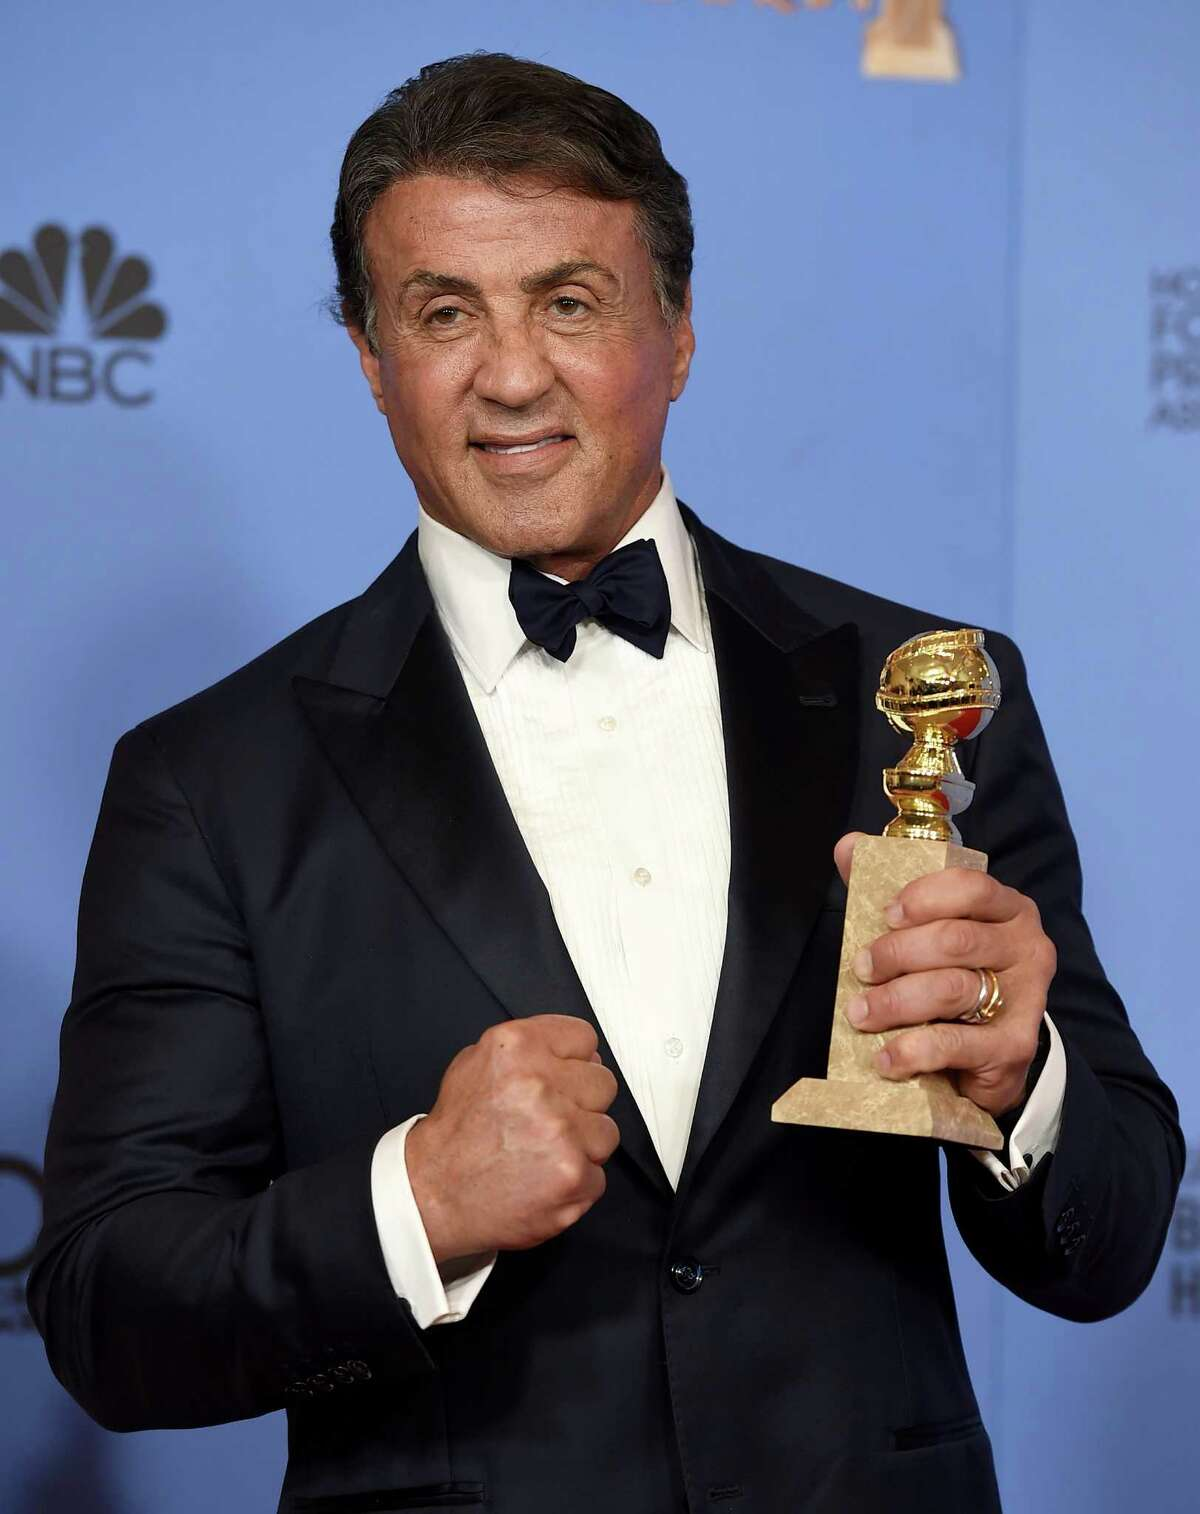 Razzies redeemer award: Sylvester Stallone Razzie won for... Worst Actor of the 80s and Worst Actor of the Century Redeemed by... Creed